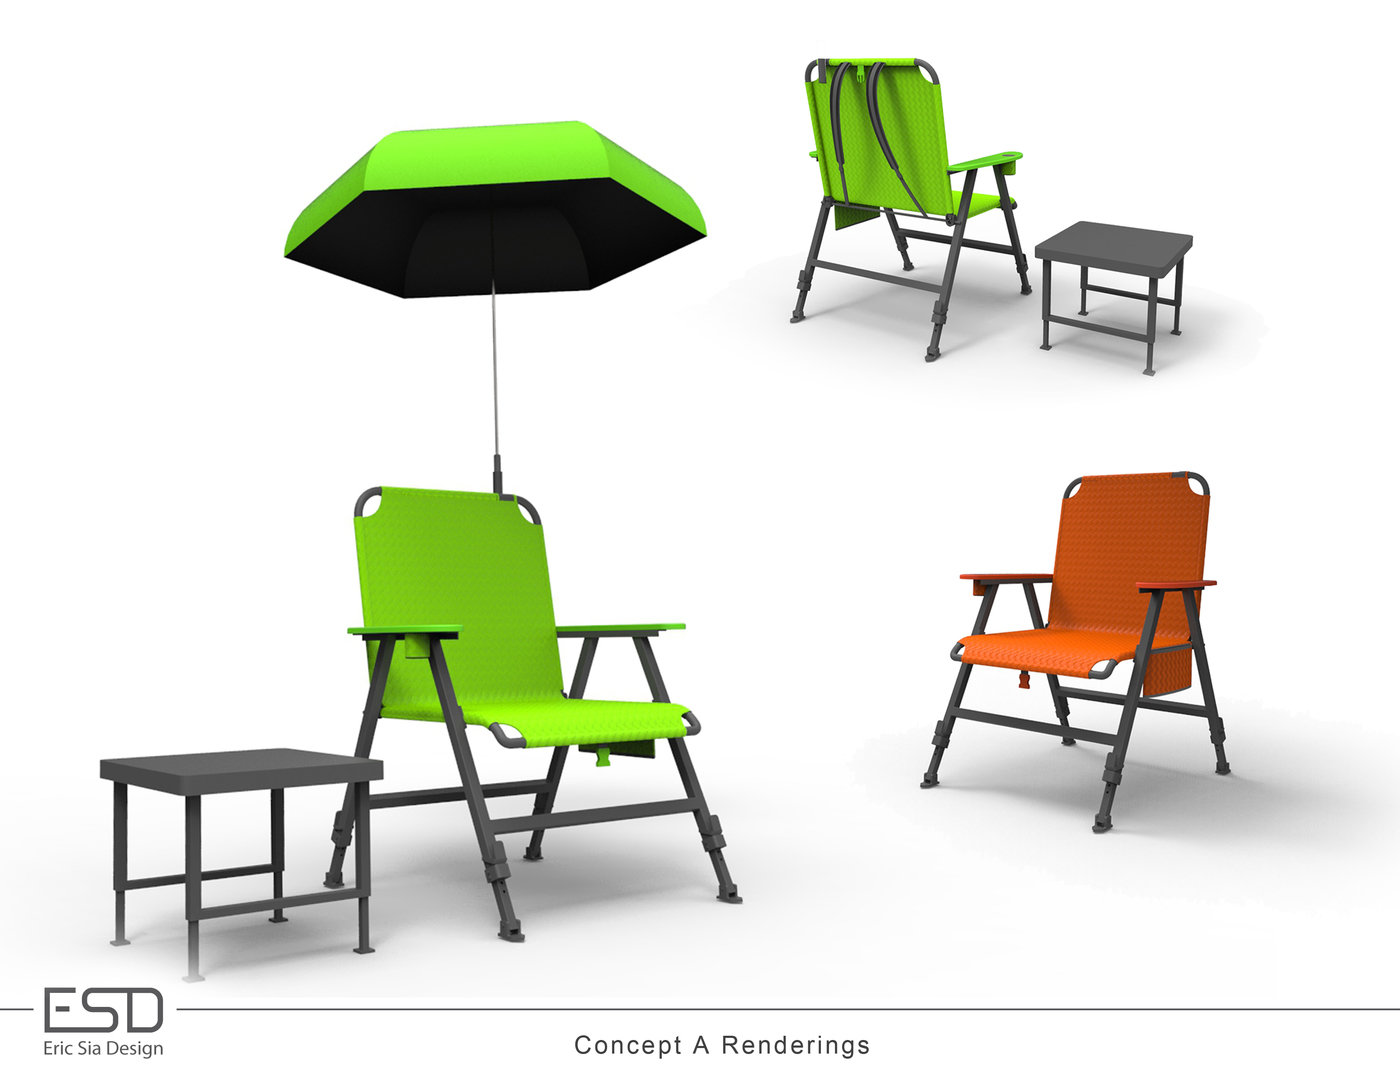 Sensational Folding Chairs Concepts By Eric Sia At Coroflot Com Ncnpc Chair Design For Home Ncnpcorg